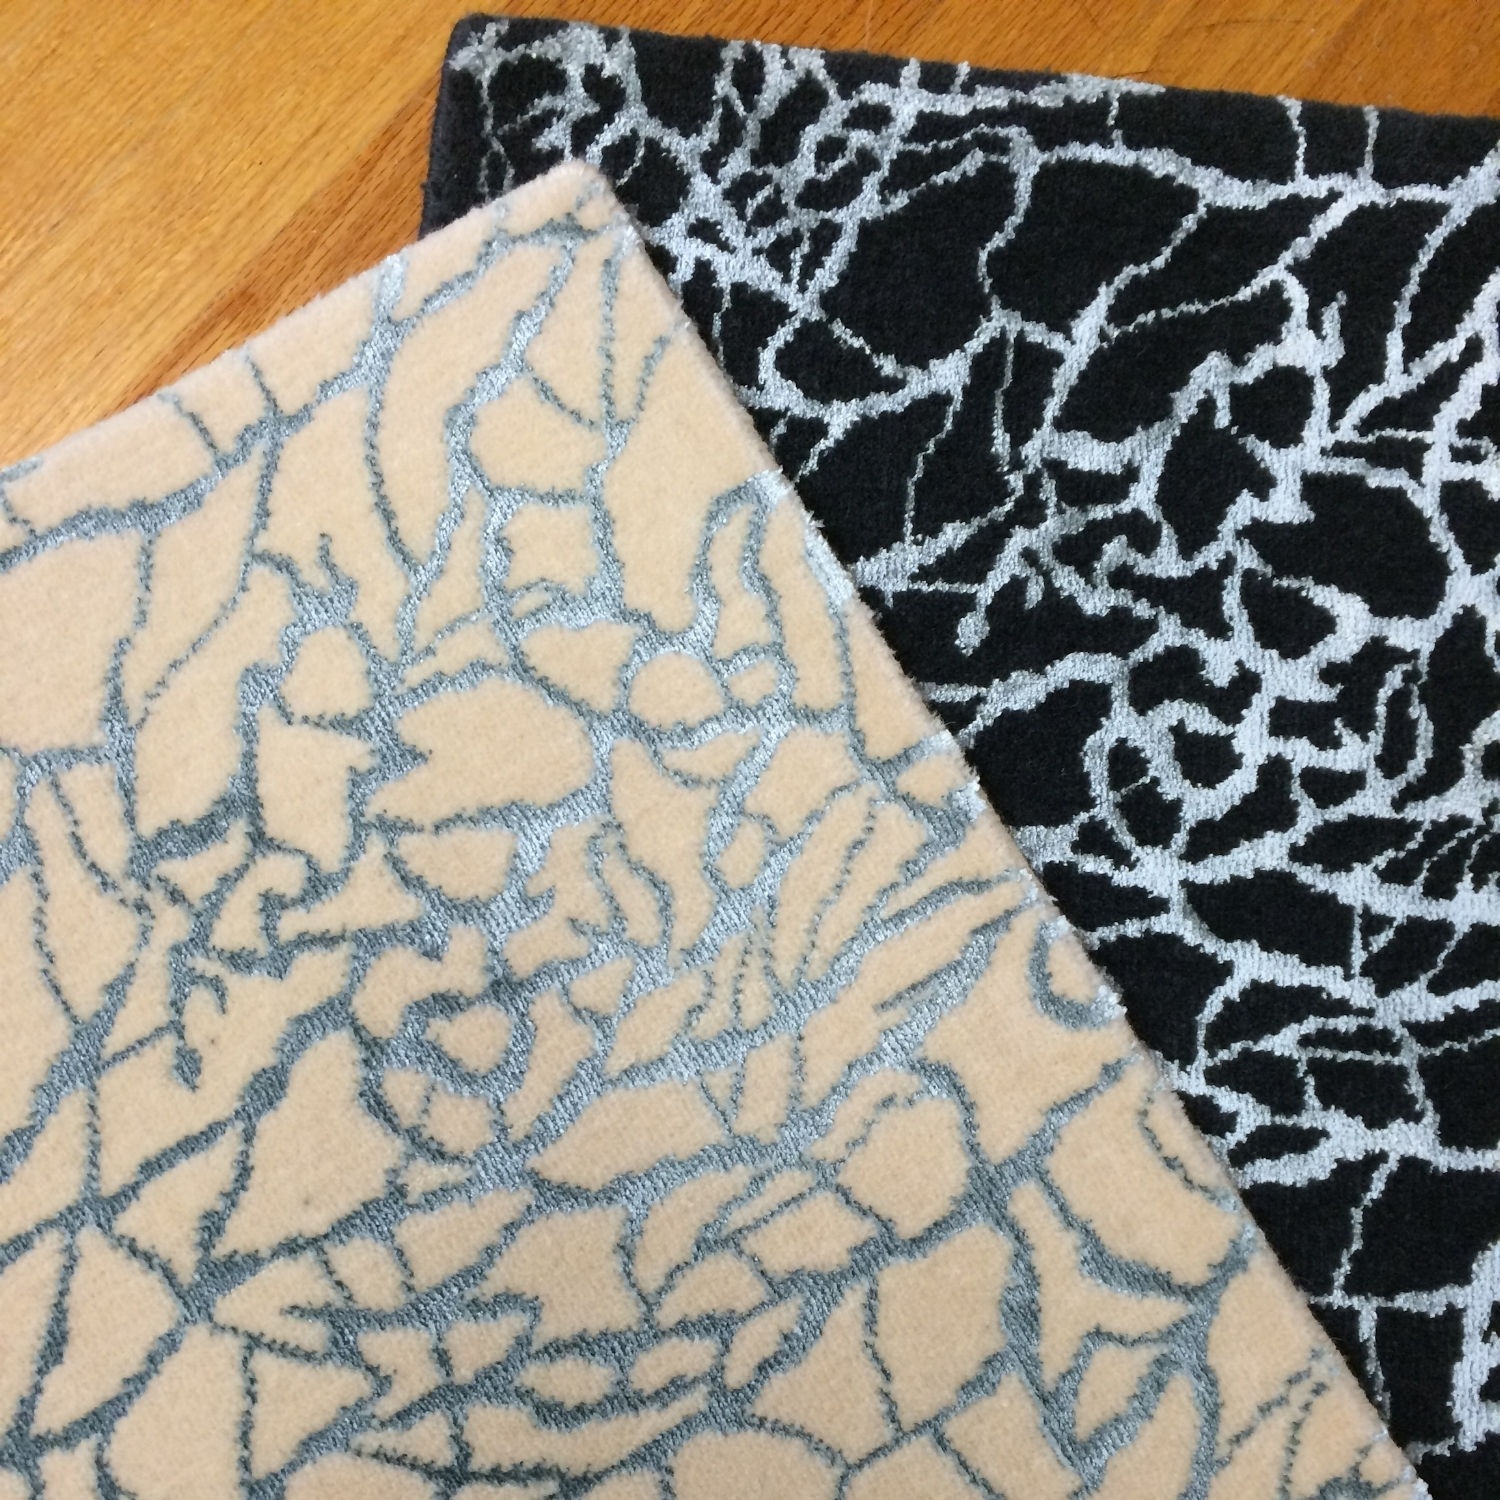 Wool carpet samples with teal shine accent in ivory and black